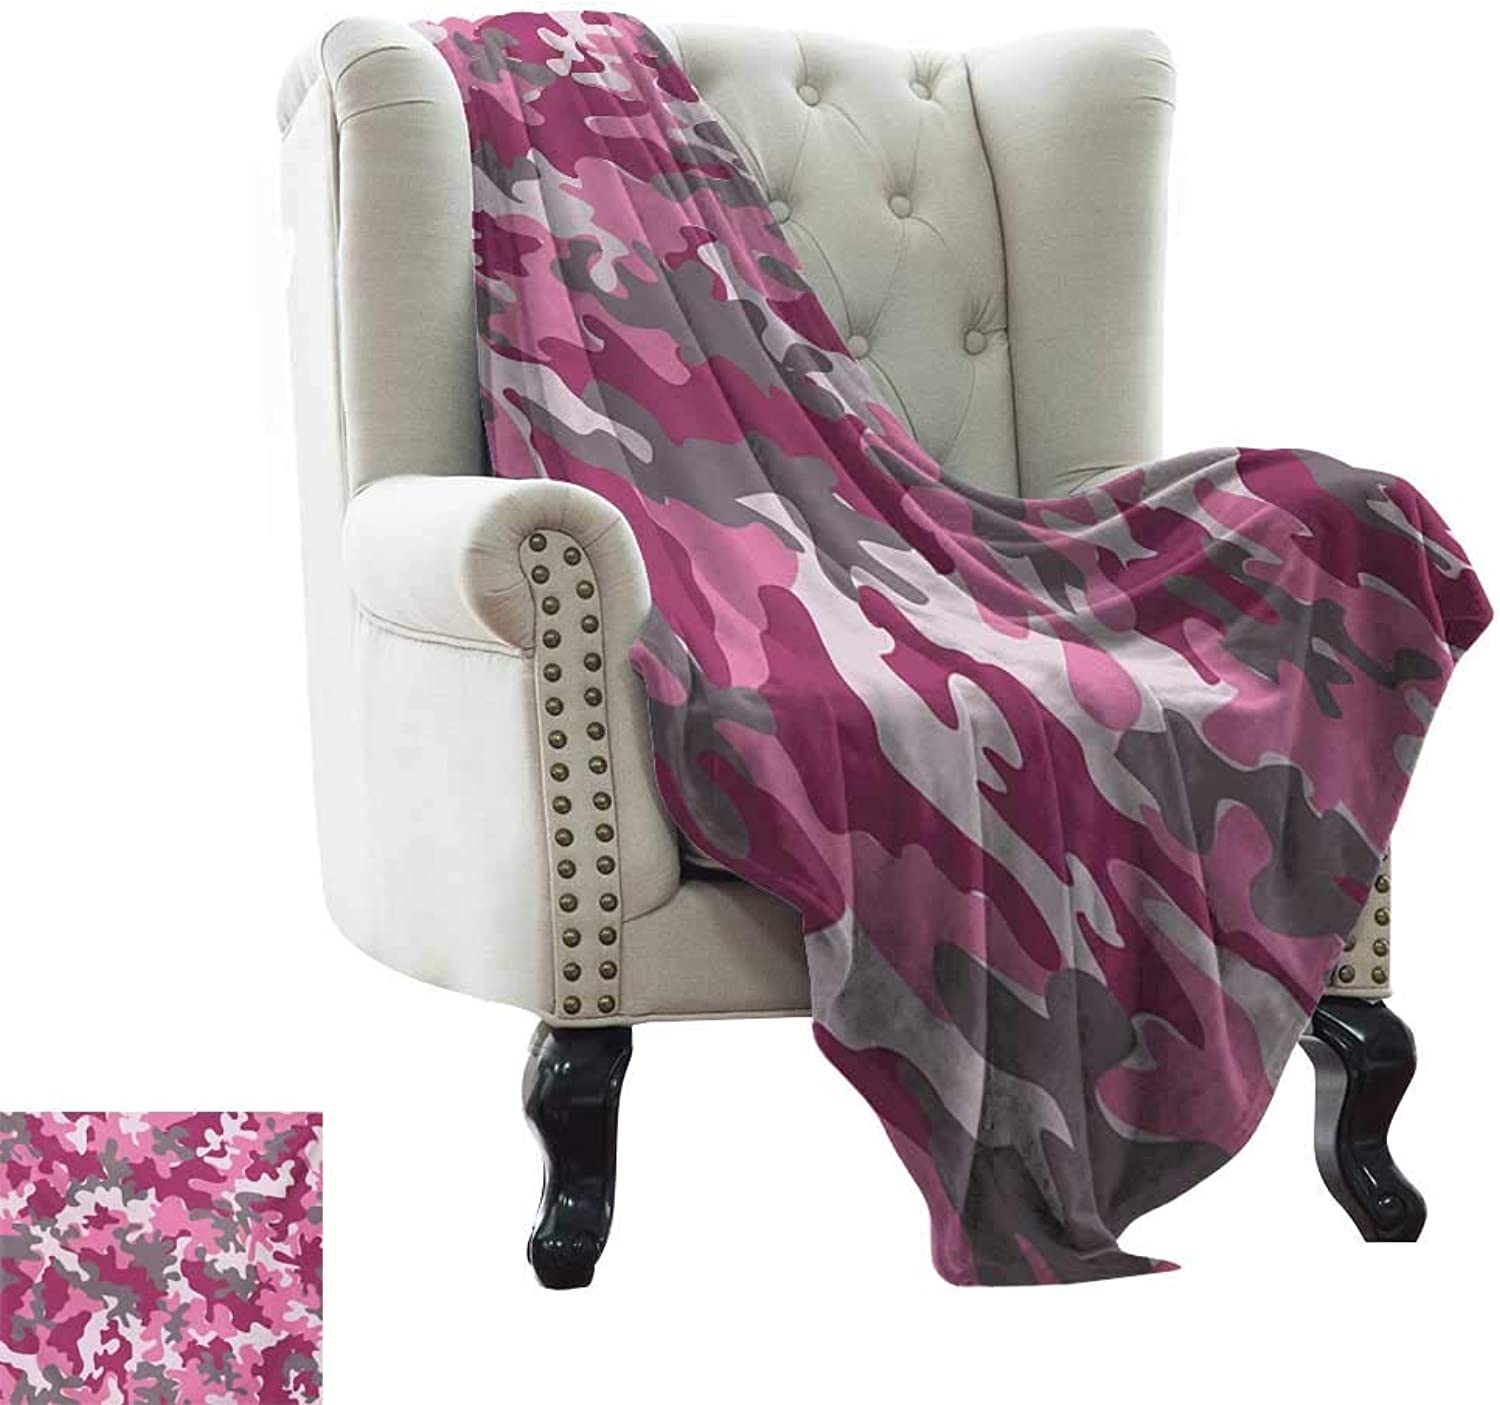 LsWOW Travel Blanket Camo,Cute Sweet Pattern in Pink Tones Feminine Design Girlish Vibrant Artistic,Magenta Hot Pink Grey Indoor Outdoor, Comfortable for All Seasons 50 x60